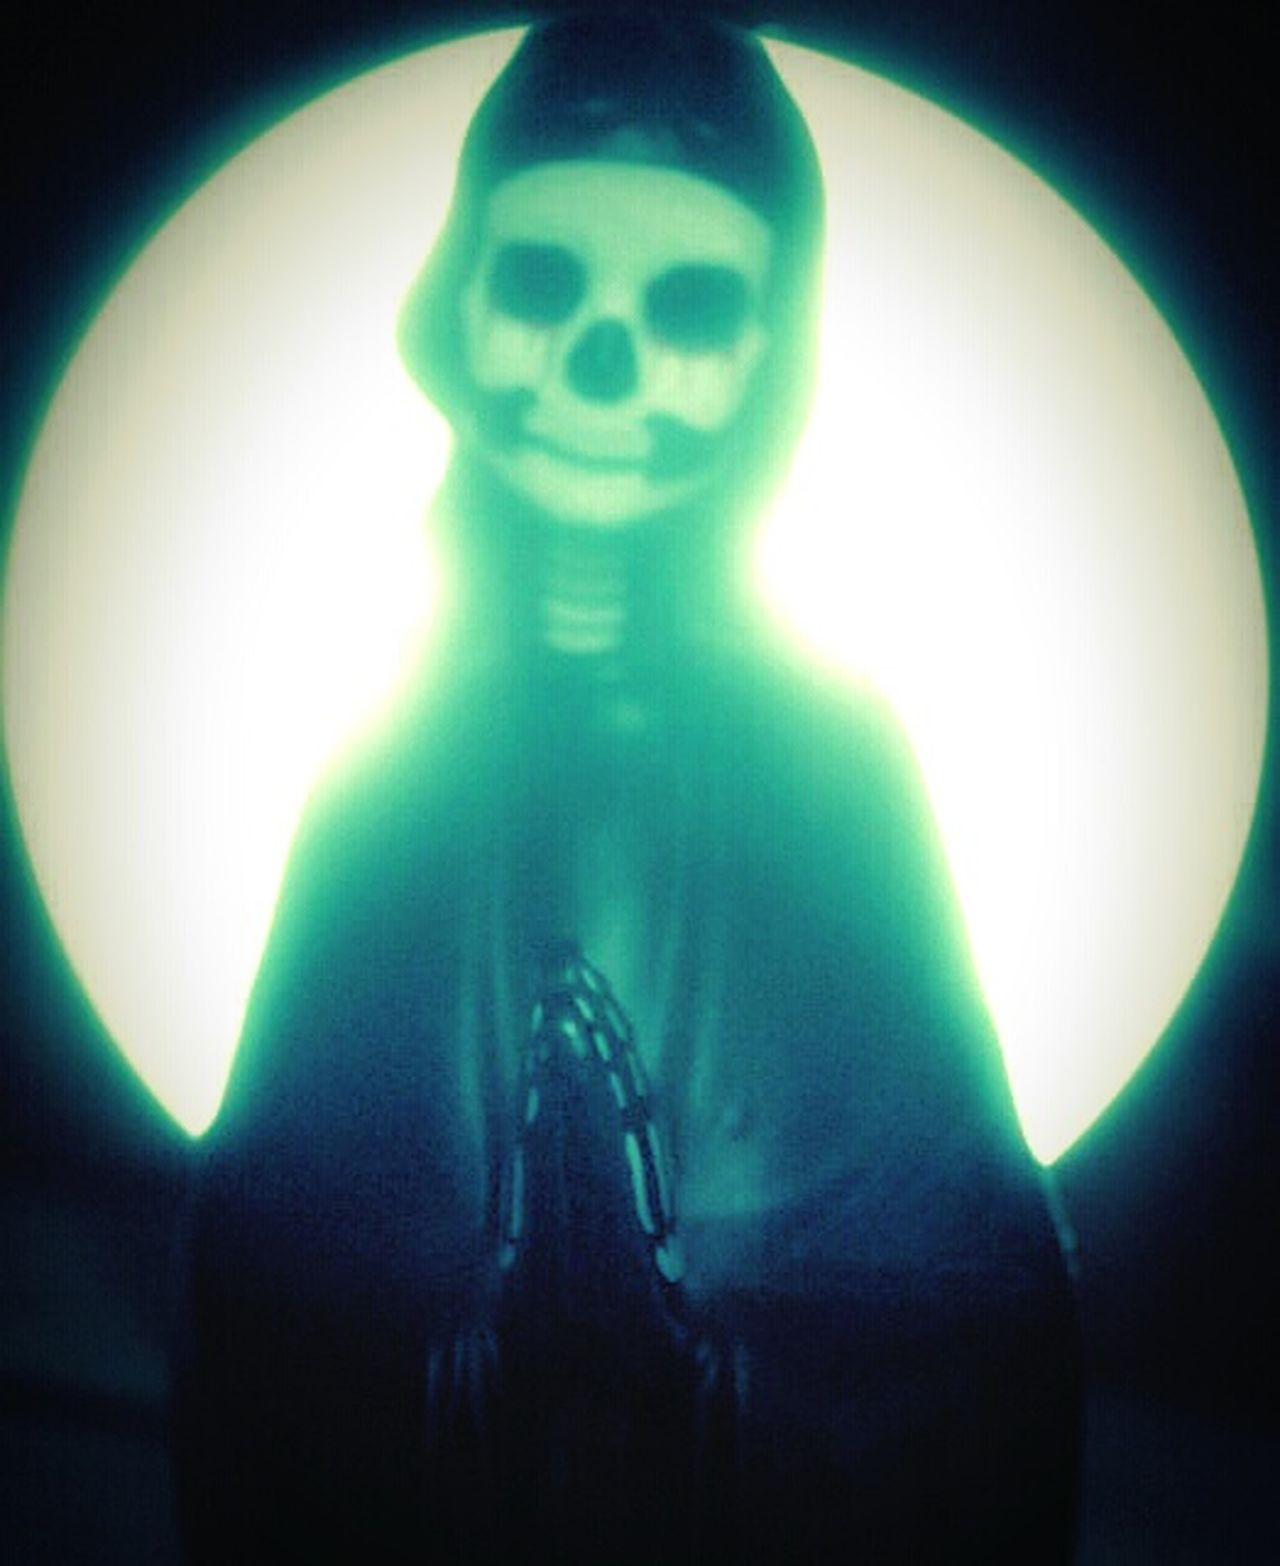 """""""Our Lady of Perpetual Dramatically Lit Moments"""" (2015) Oddities Odd But Beautiful Odd Dark Art Just For Fun Silly Shits And Gigs Skeleton Dead Things Fake Saints fakes Anti-saint"""